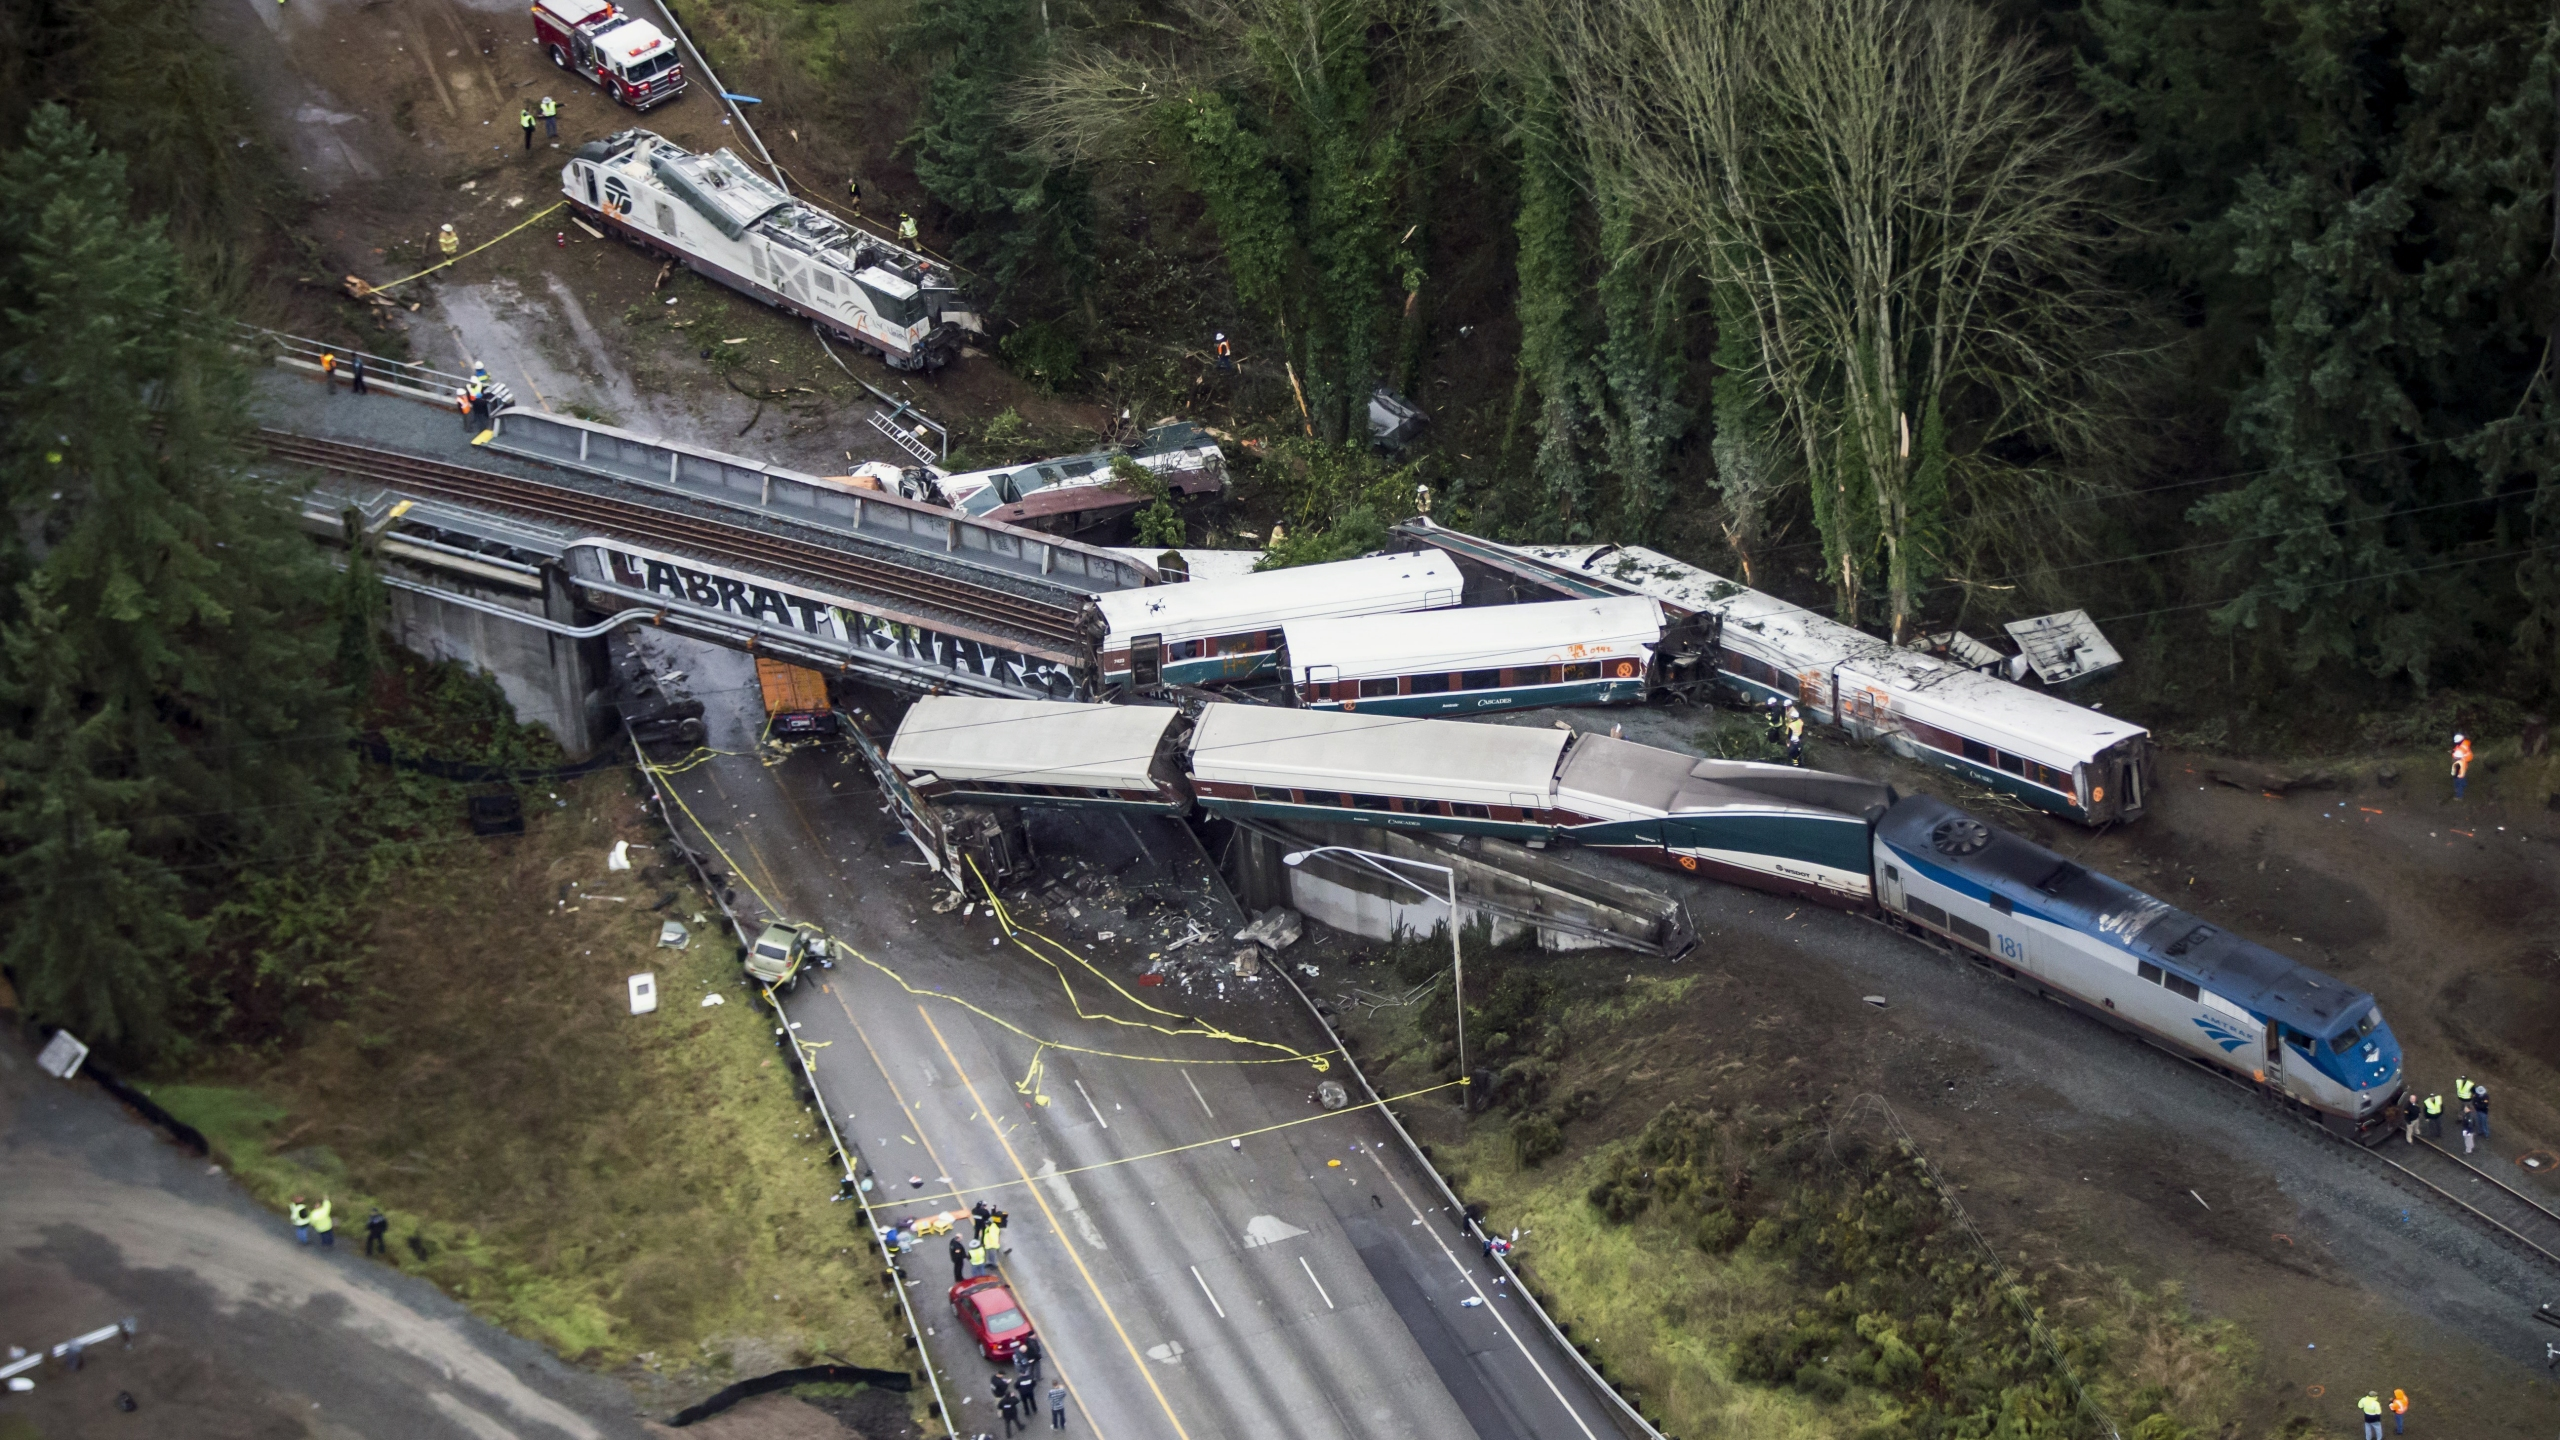 Train_Derailment_Washington_State_33521-159532.jpg93632303